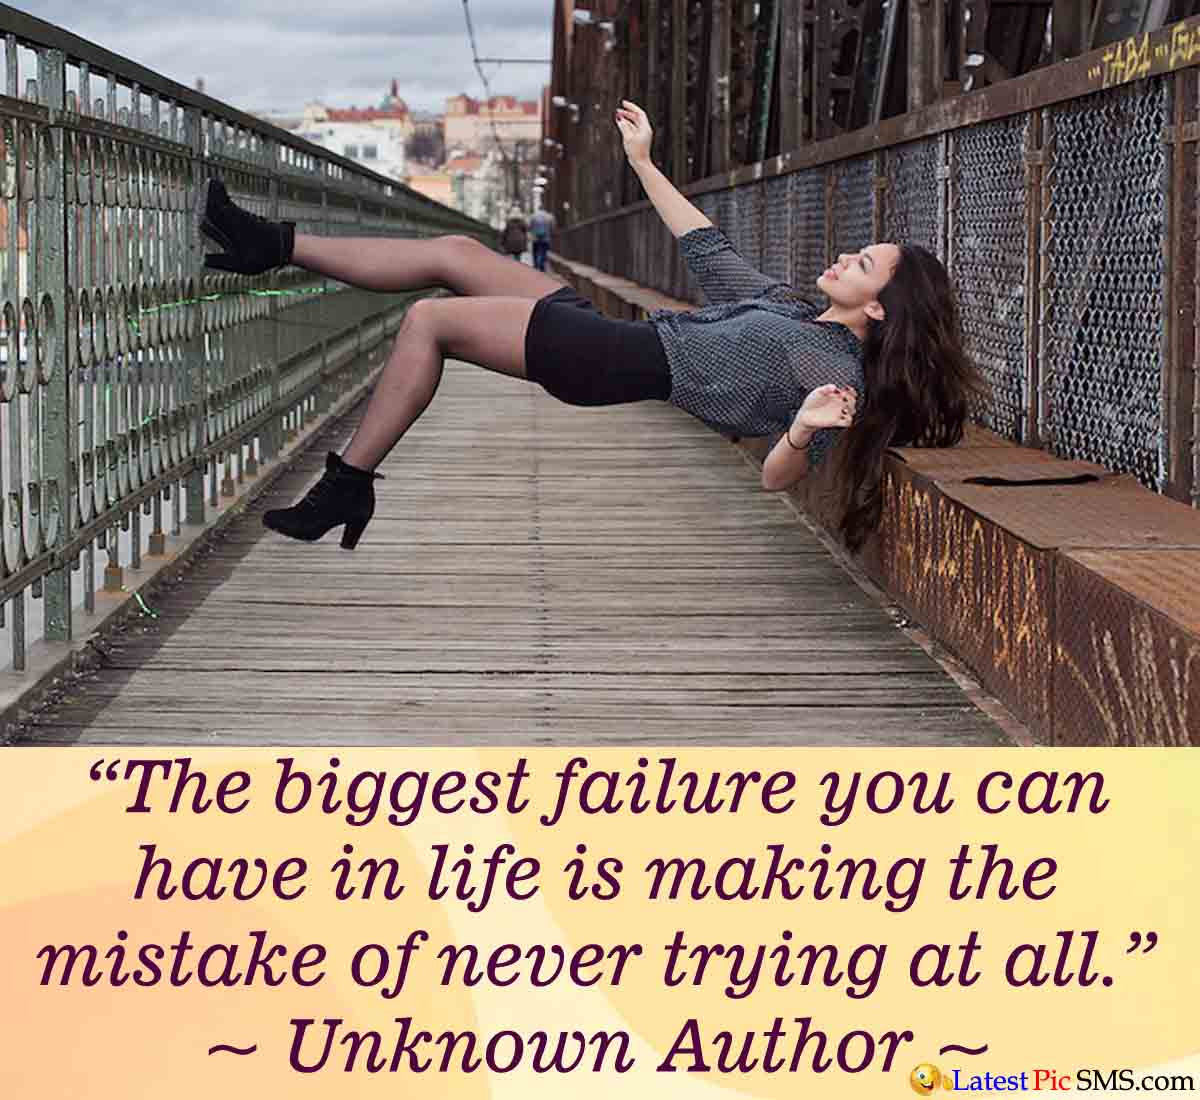 failure life quote - Thoughts on Life Images for Whatsapp and Facebook